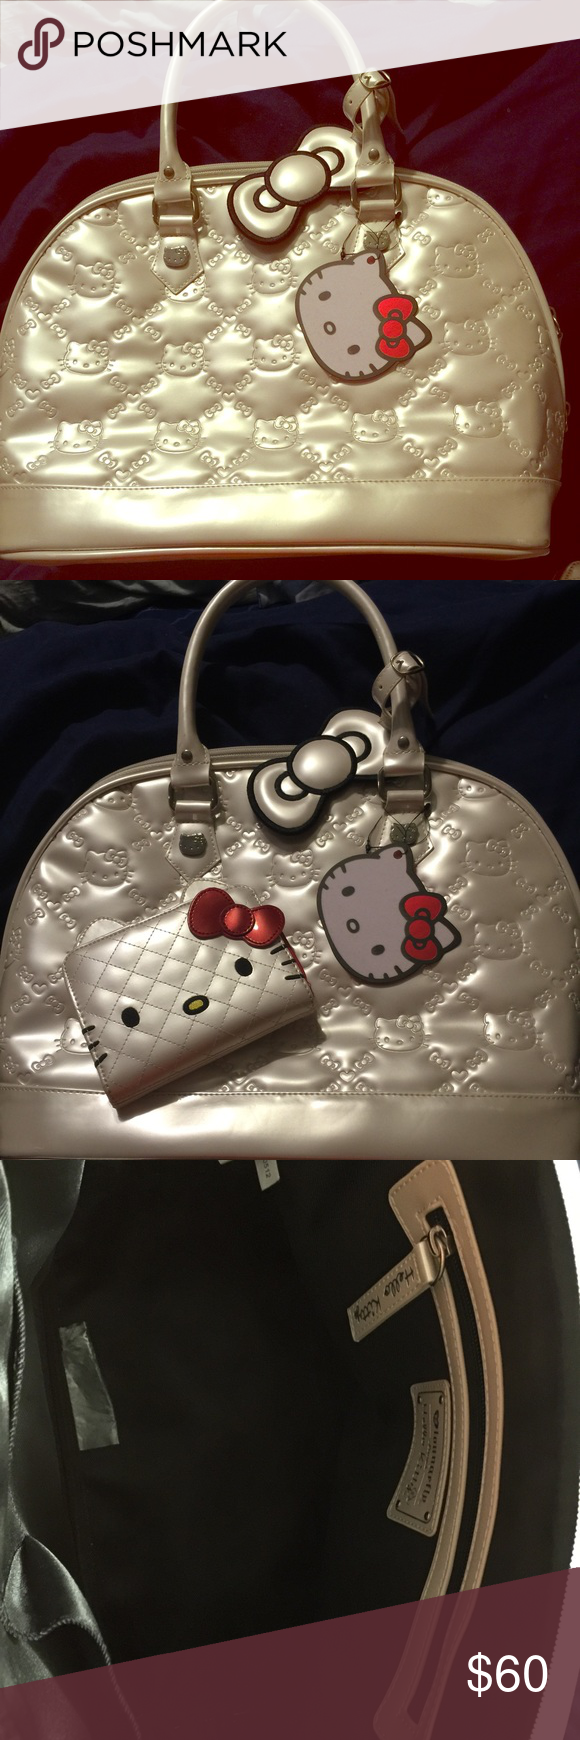 Hello kitty Super cute Hello Kitty purse I am adding a wallet also that was never used. In excellent condition has been sitting on top of my closet! Hello Kitty Bags Totes